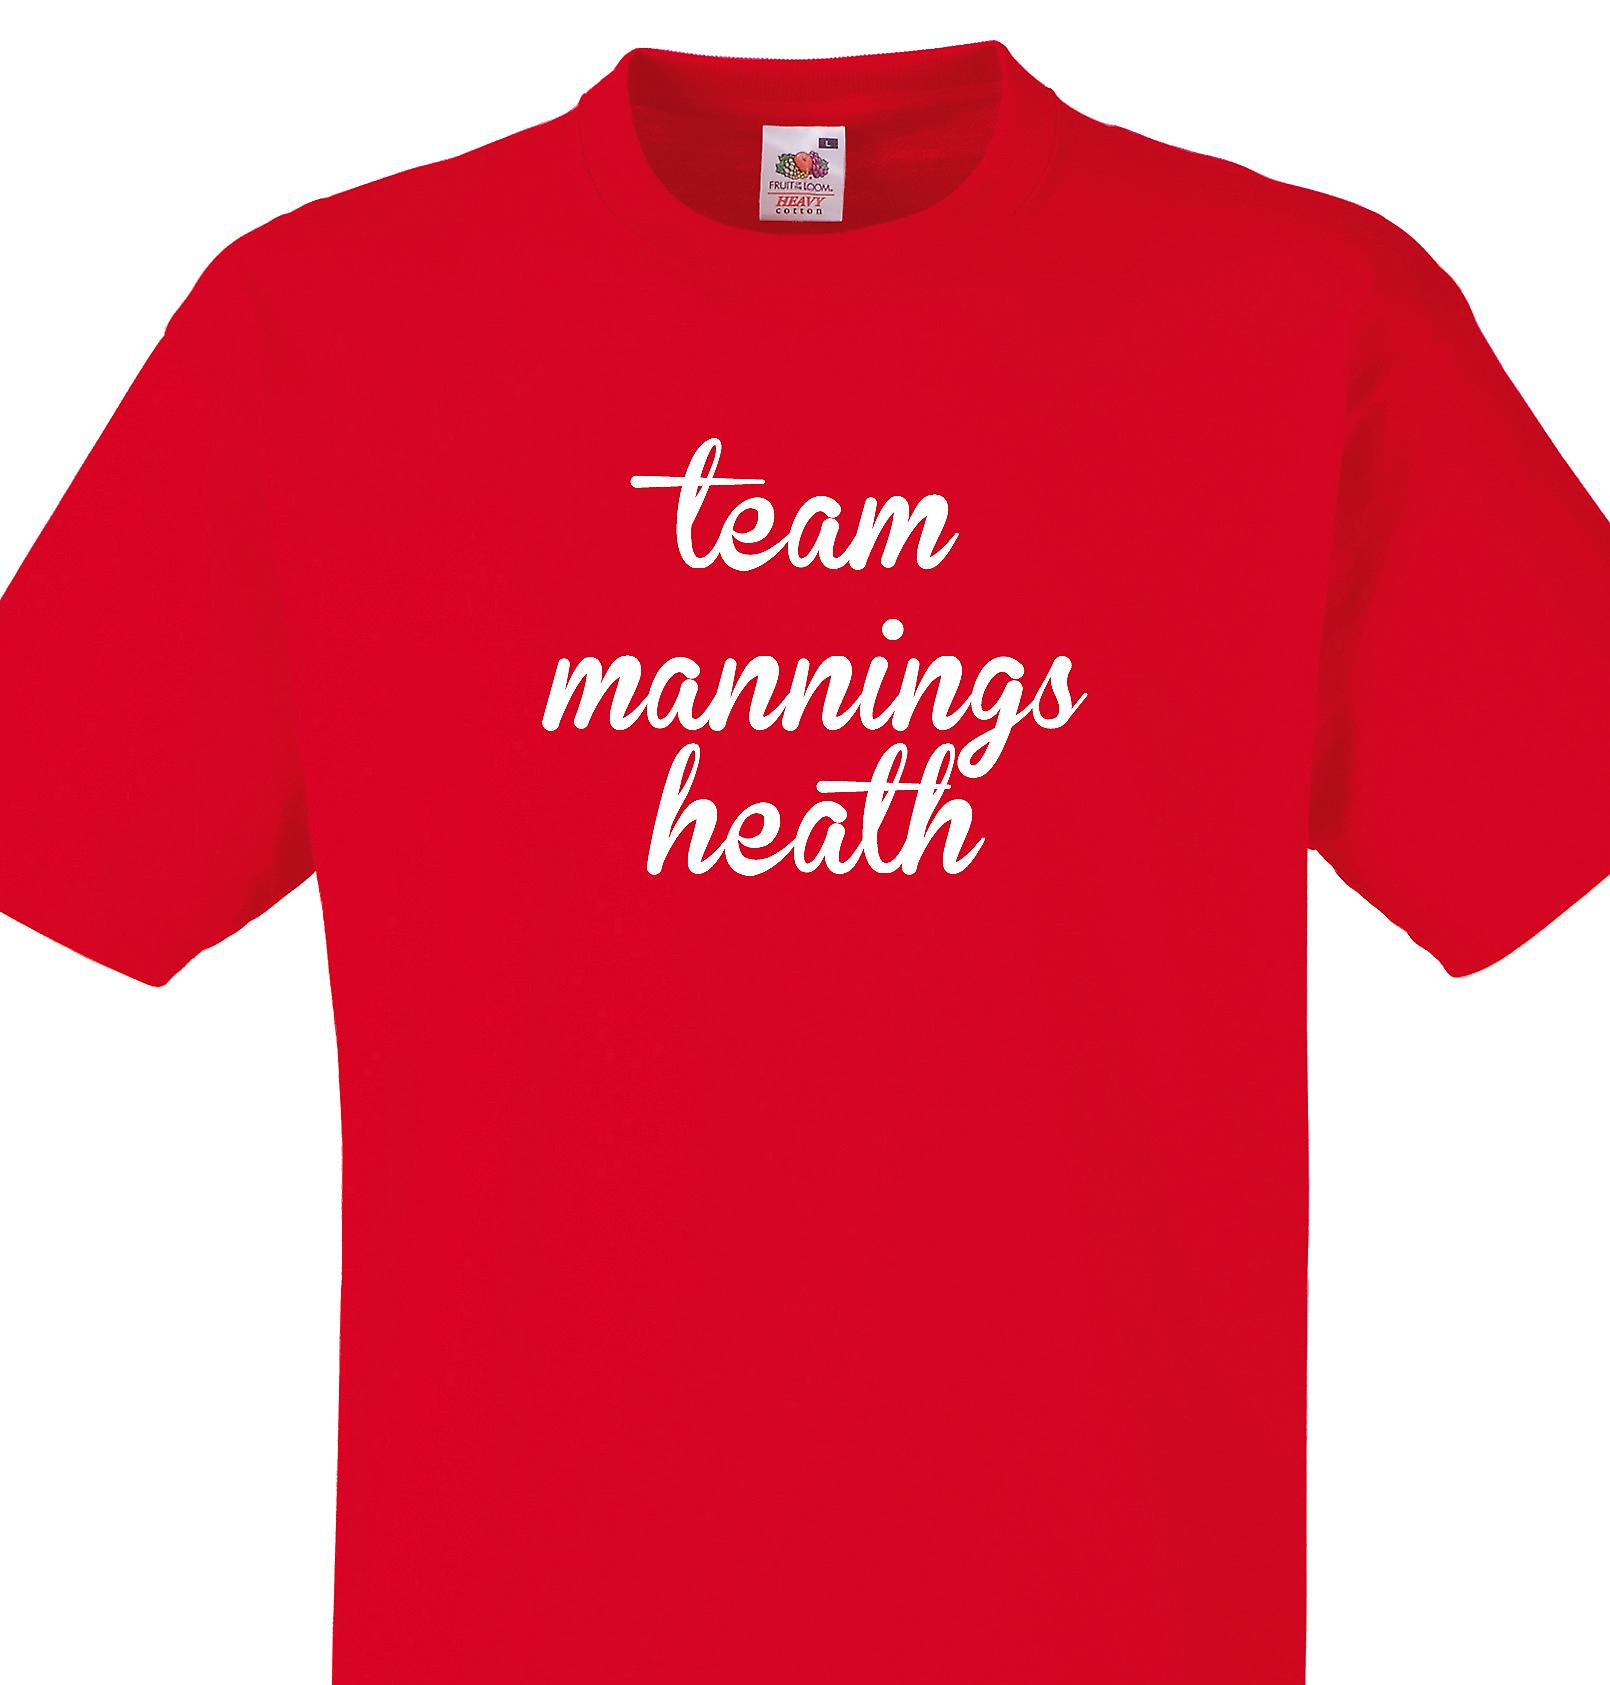 Team Mannings heath Red T shirt